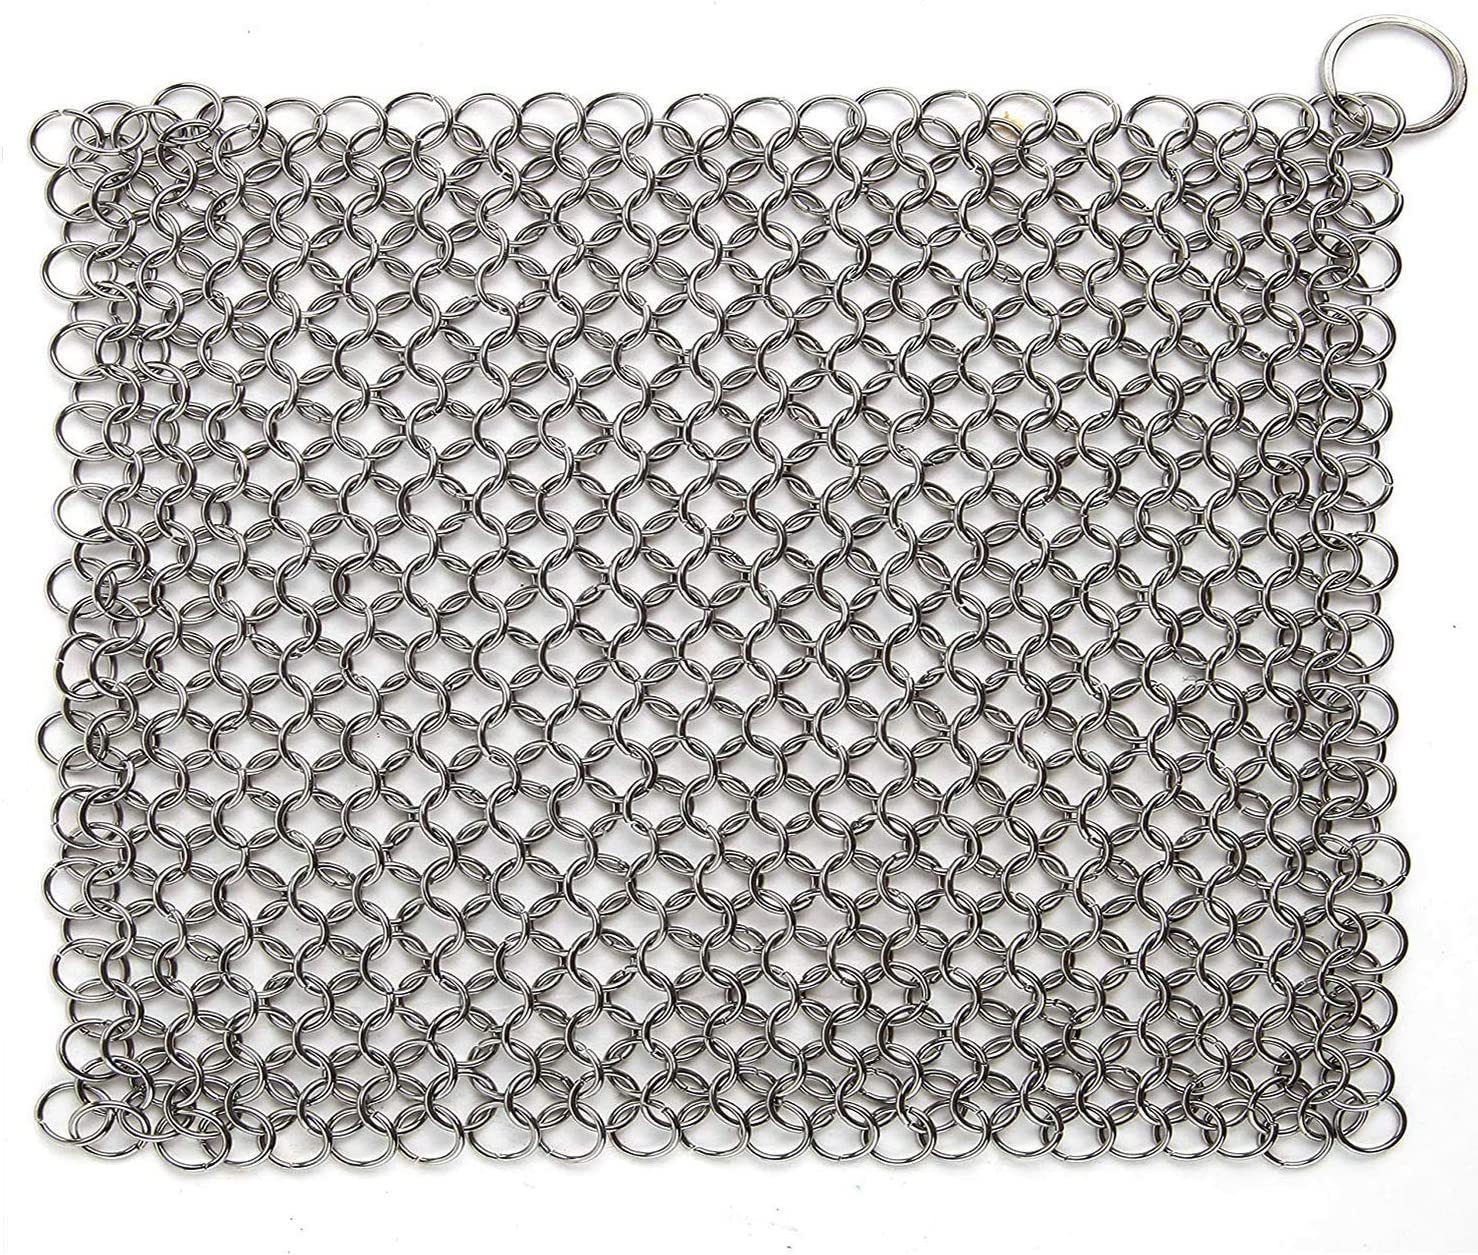 Hulless Chainmail New mail order Many popular brands Scrubber 8x6 inch Cast Iron Steel Stainless Cl